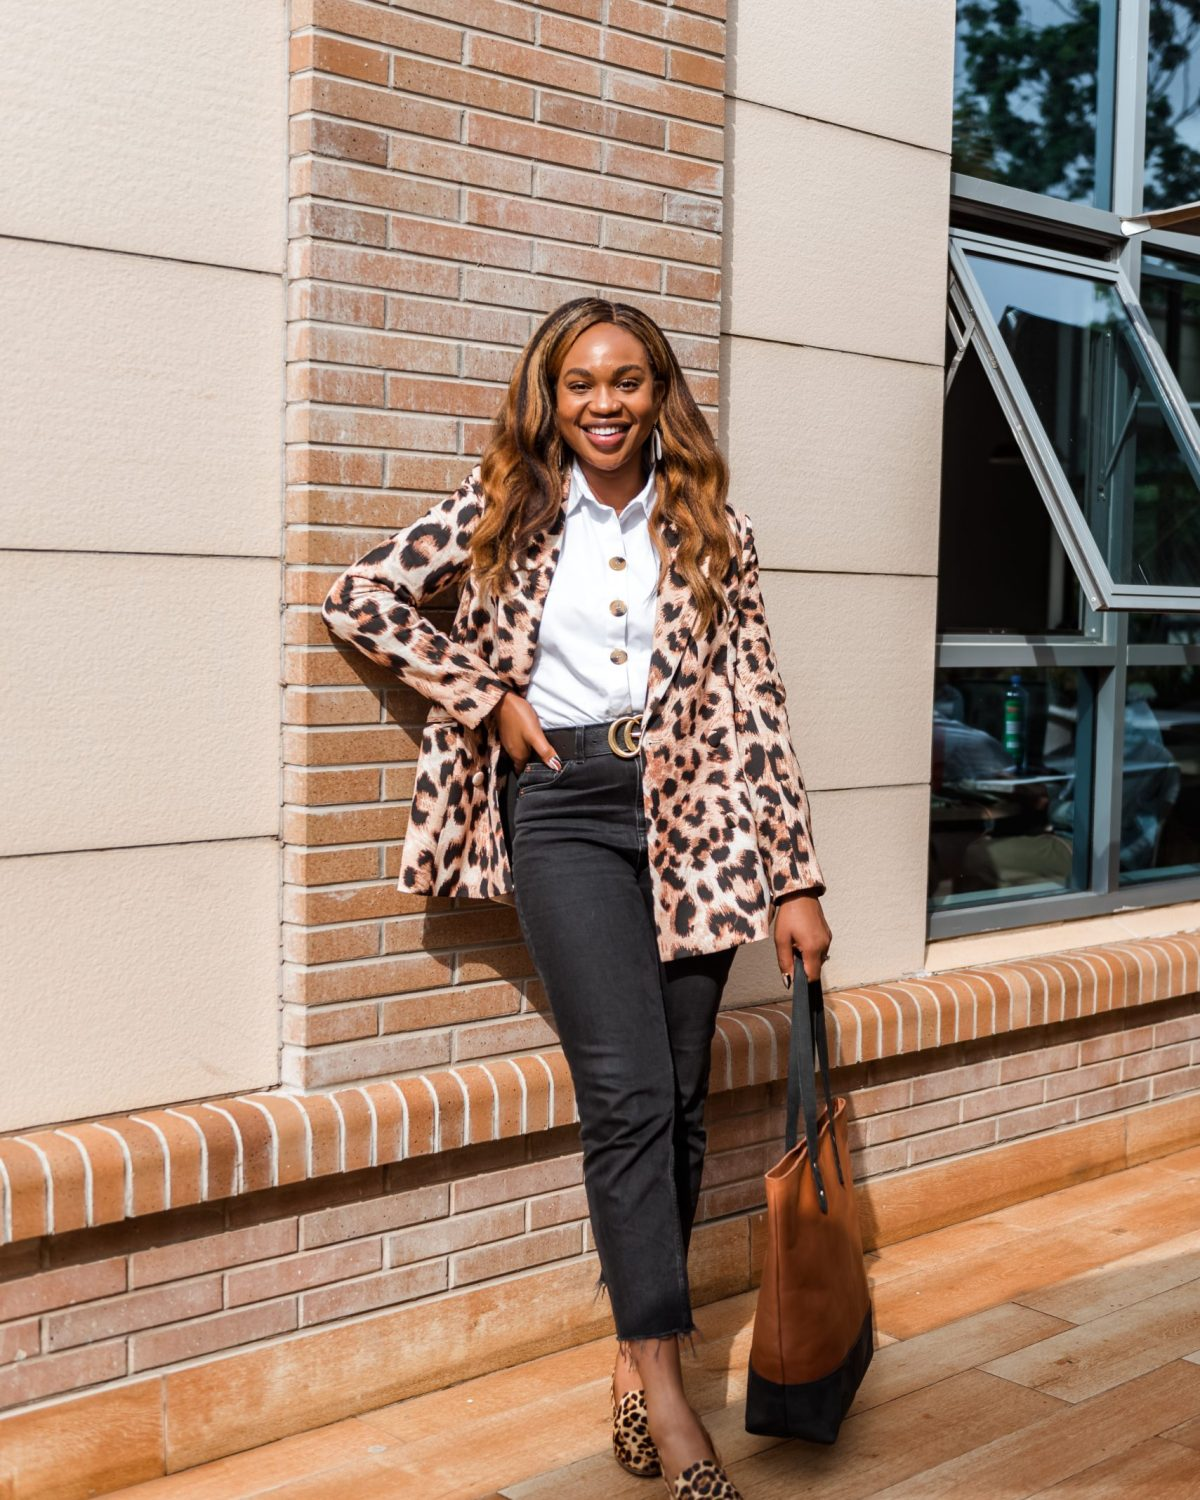 Full outfit shot of Ijeoma Kola posing outside with hand on hip wearing animal print blazer, white shirt, black pants and shoes - How Black Owned Businesses Can Optimize Black History Month